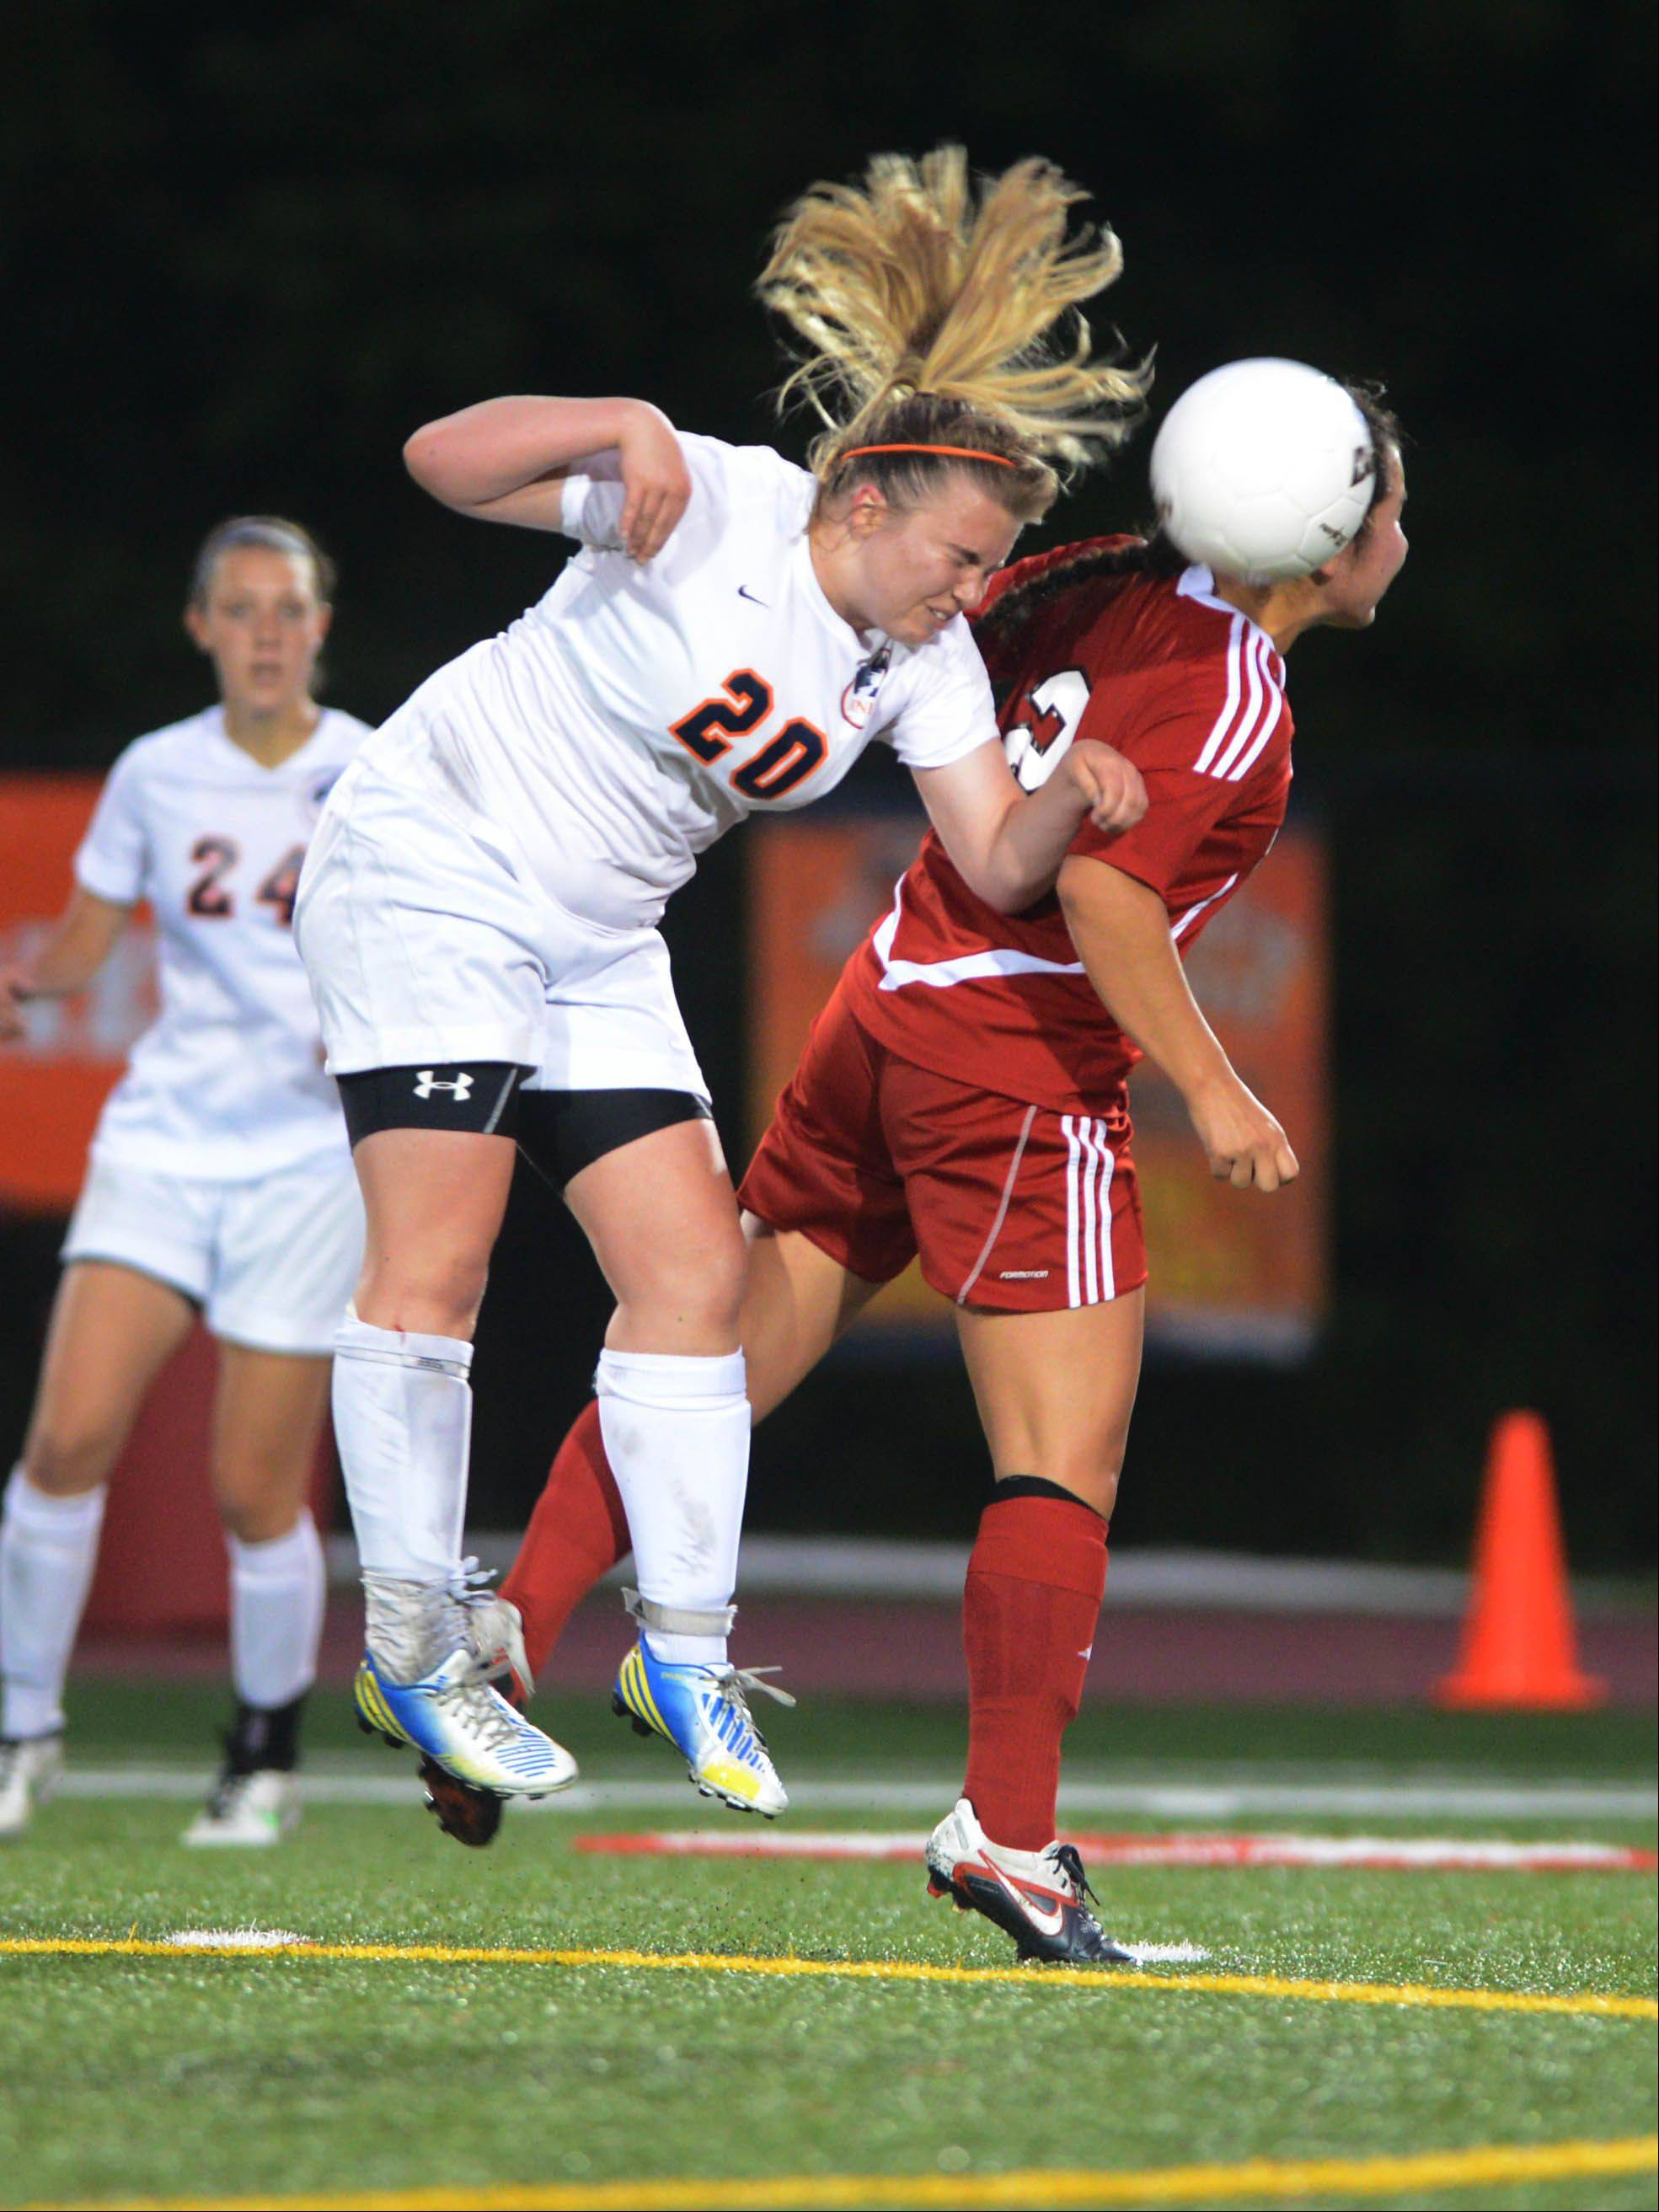 Emily Bromagen of Naperville North and Caitlin Smith of Hinsdale Central vie for the ball during the Class 3A girls soccer championship match in Naperville Saturday.